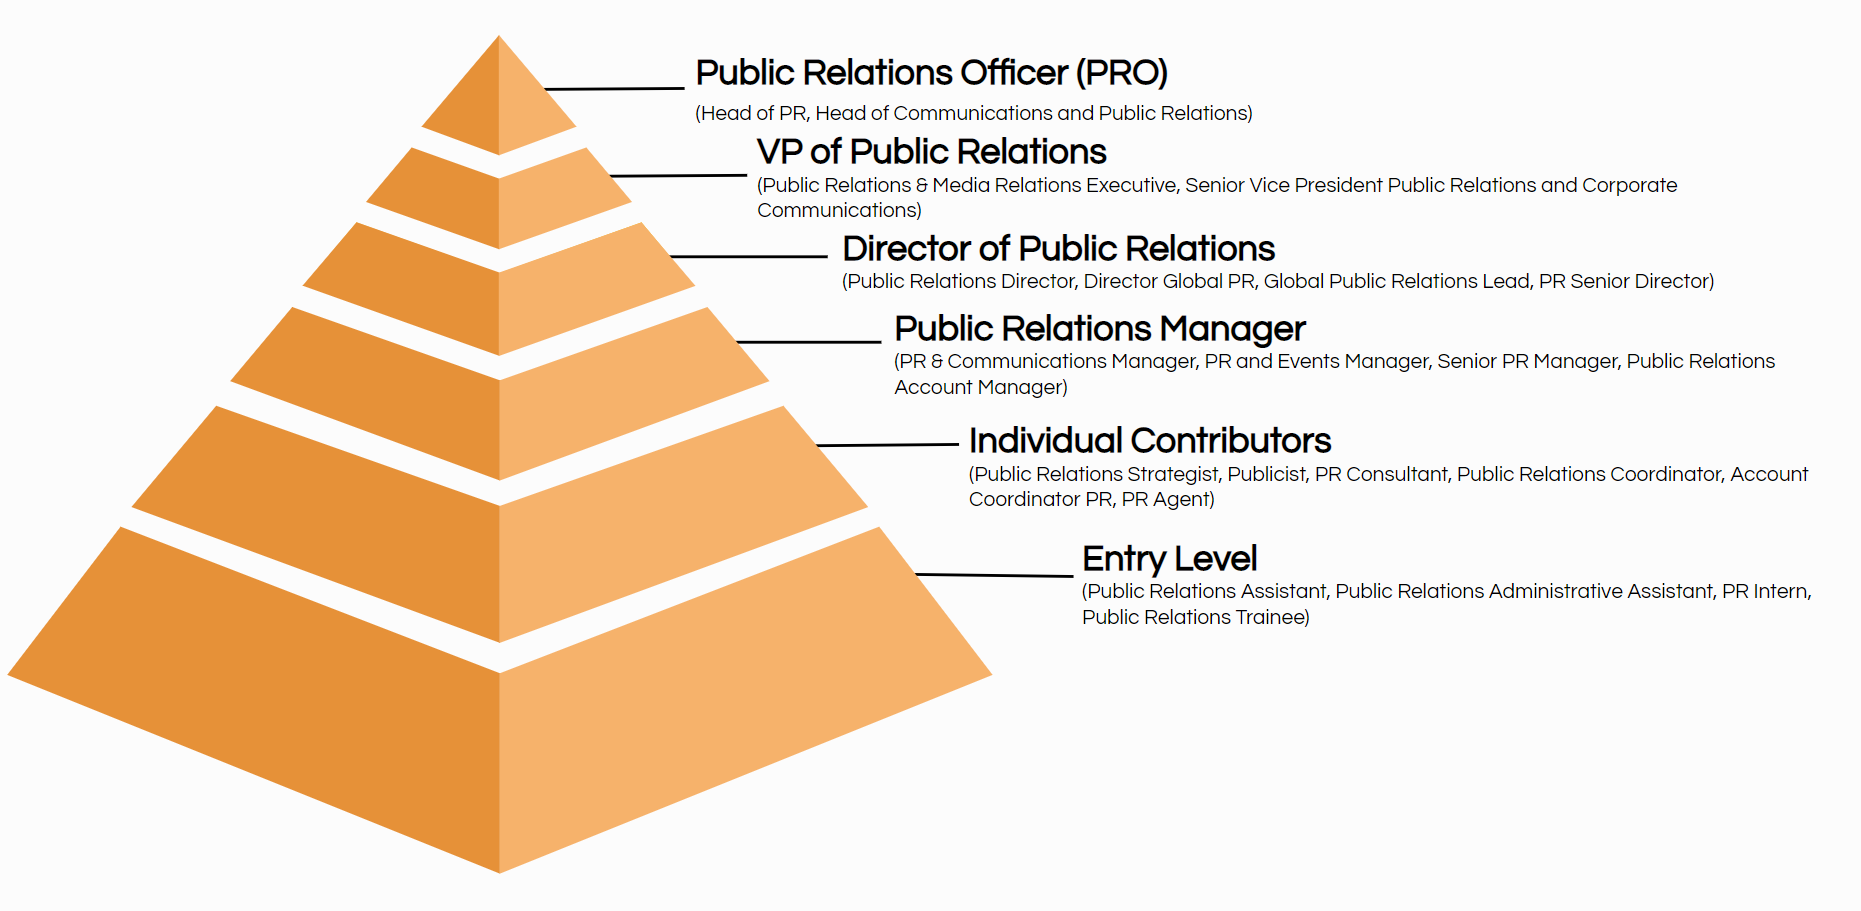 public relations job titles hierarchy